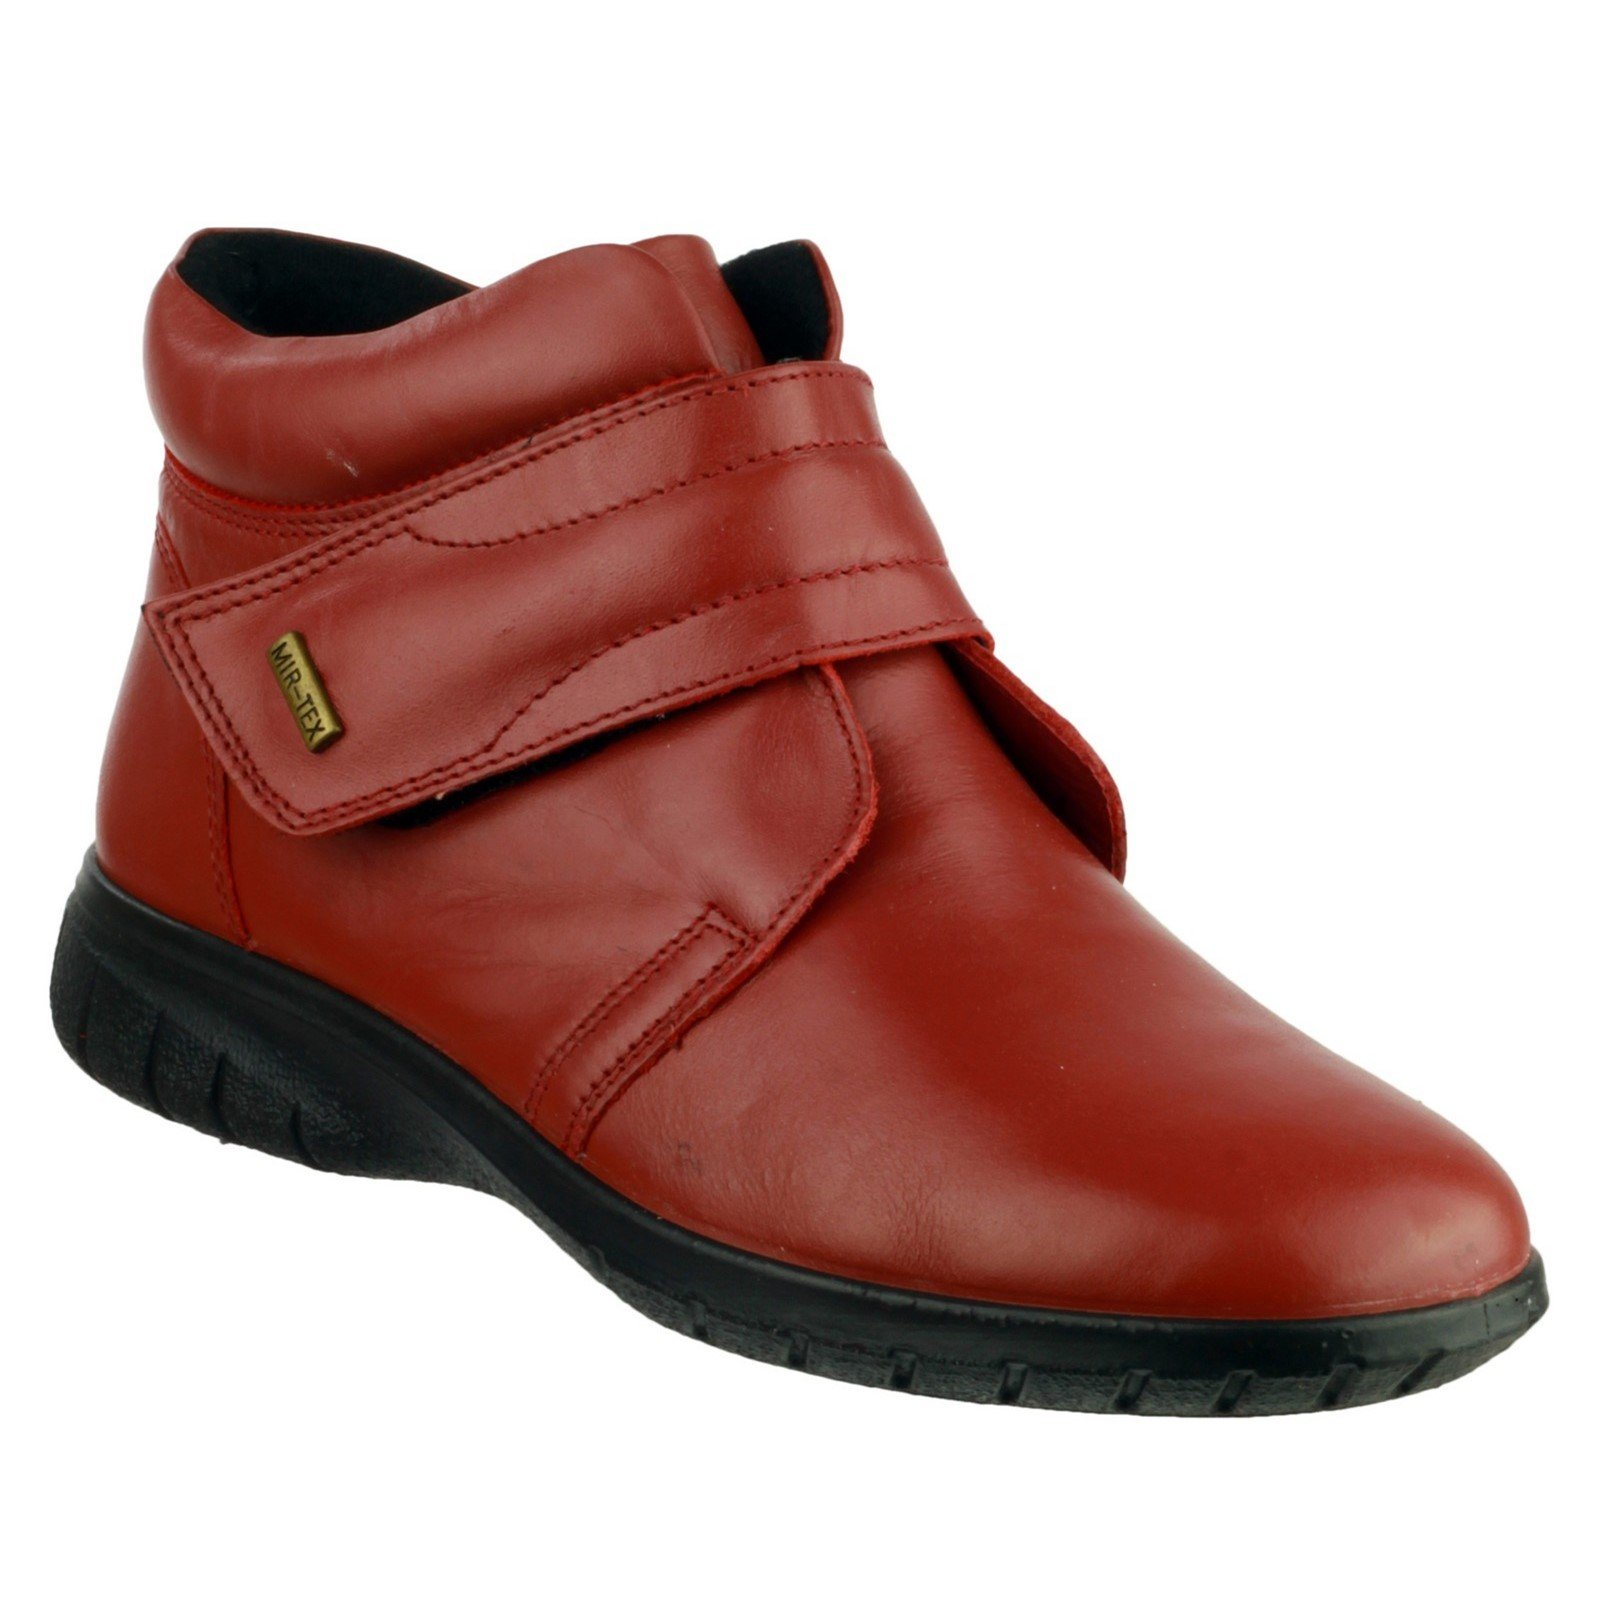 Cotswold Women's Chalford 2 Ankle Boot Various Colours 32977 - Red 5